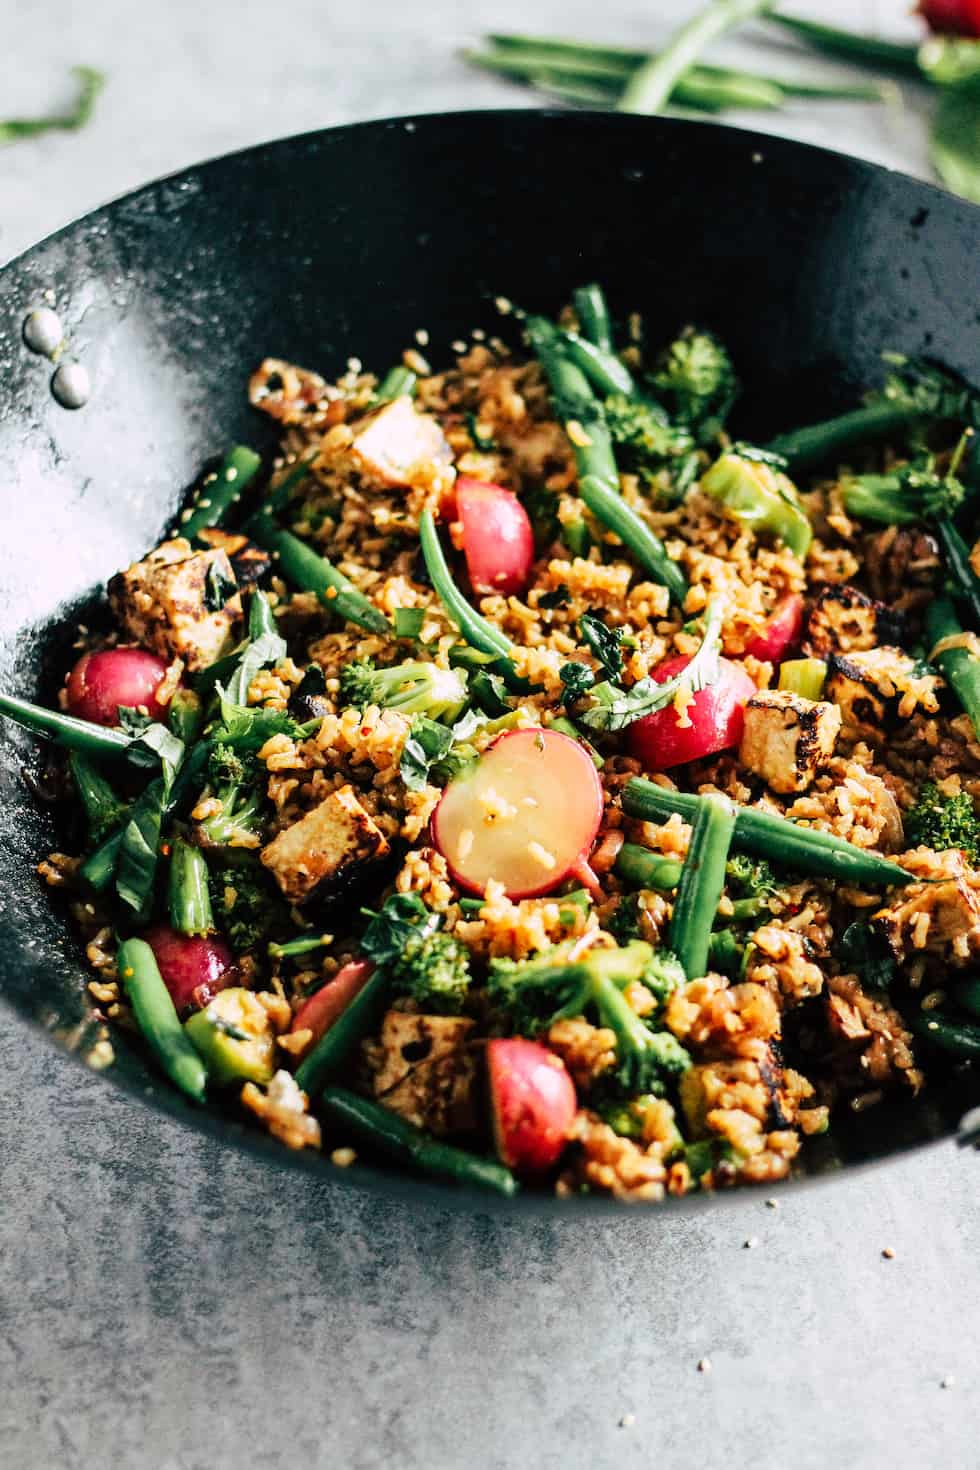 Wok of veggie fried rice with radishes and green beans.